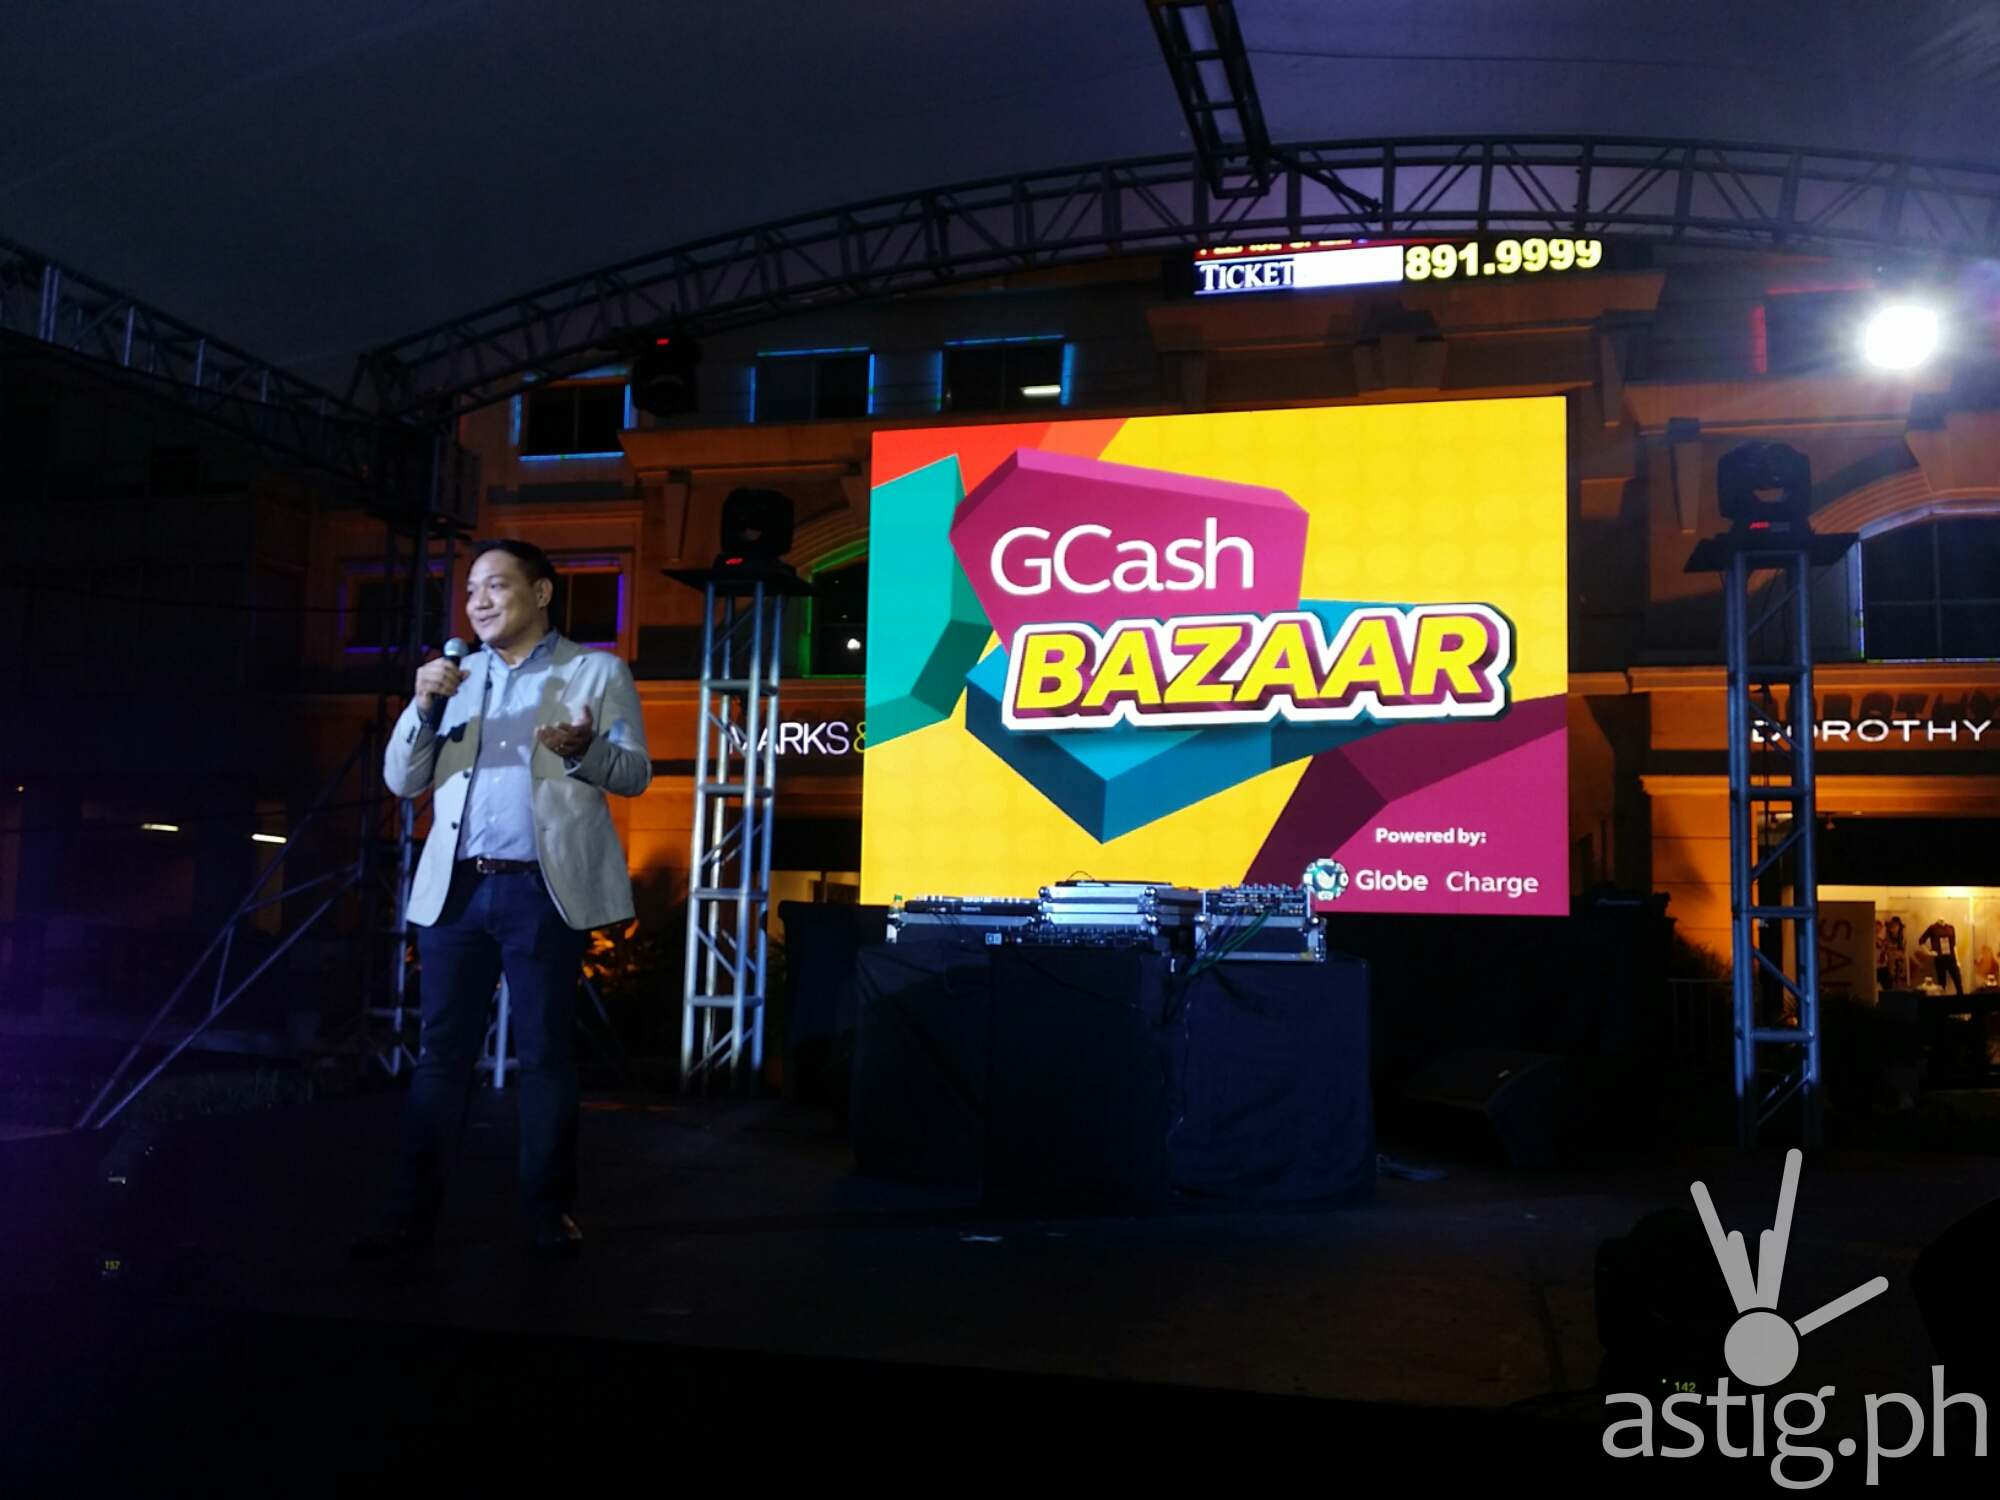 3-day GCASH bazaar shows off cashless payment features ...